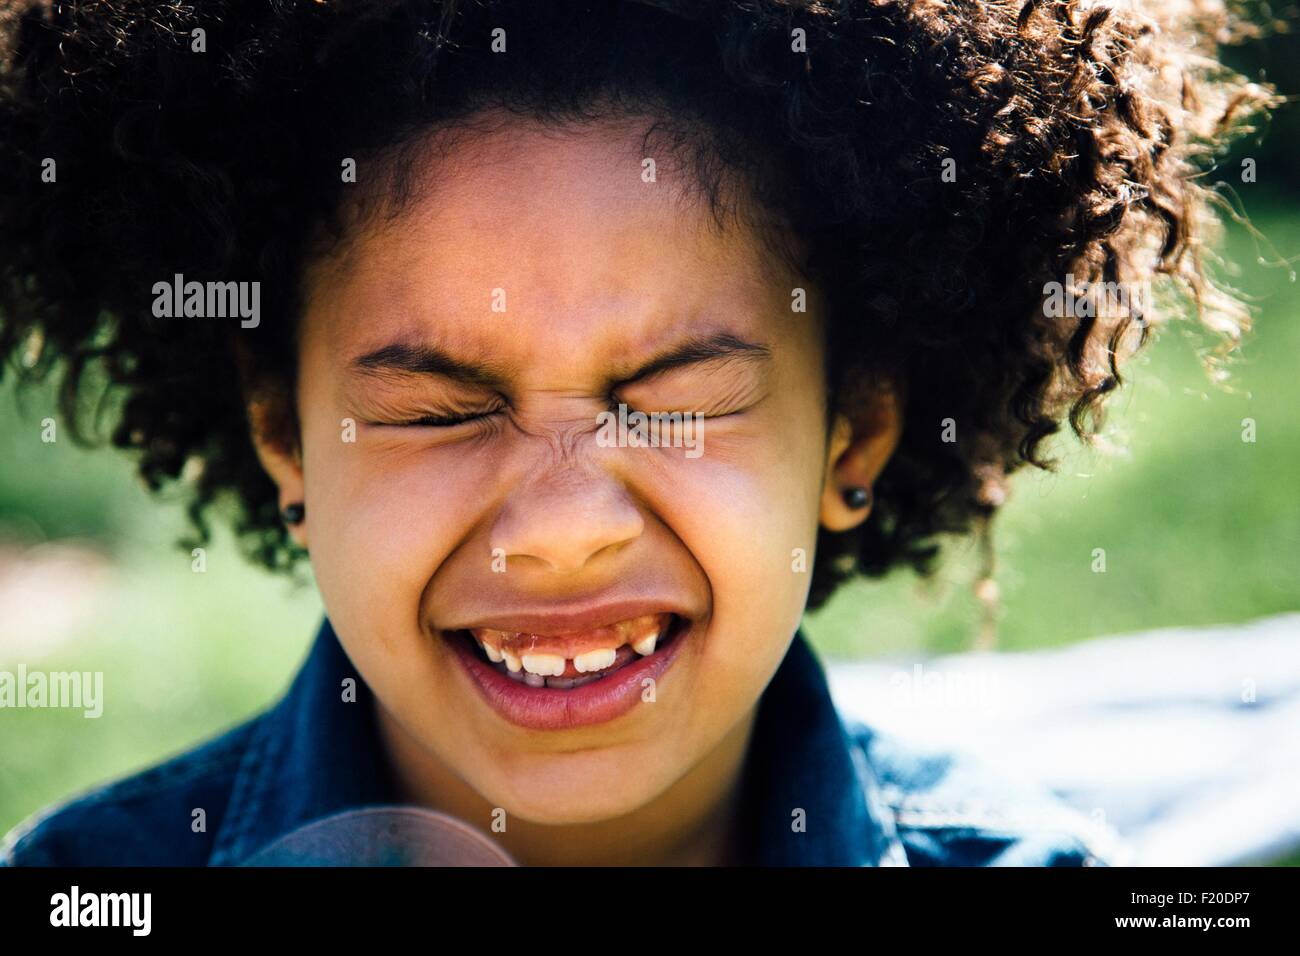 Close up portrait of girl with eyes closed pulling face - Stock Image